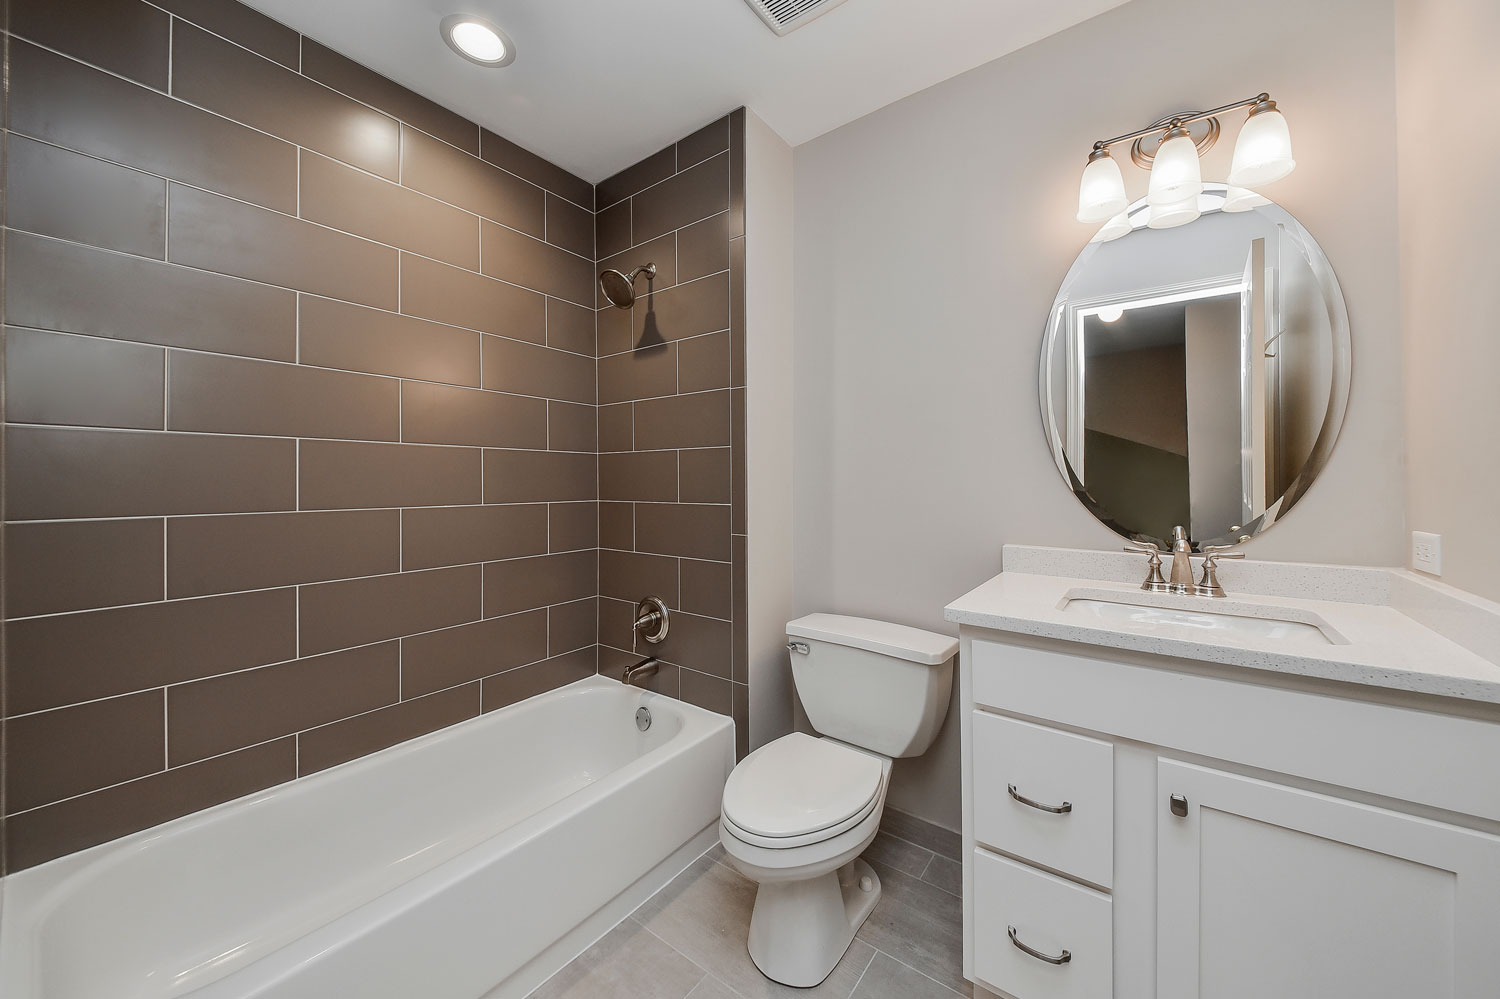 Charles cindy 39 s hall bathroom remodel pictures home Bathroom remodeling services